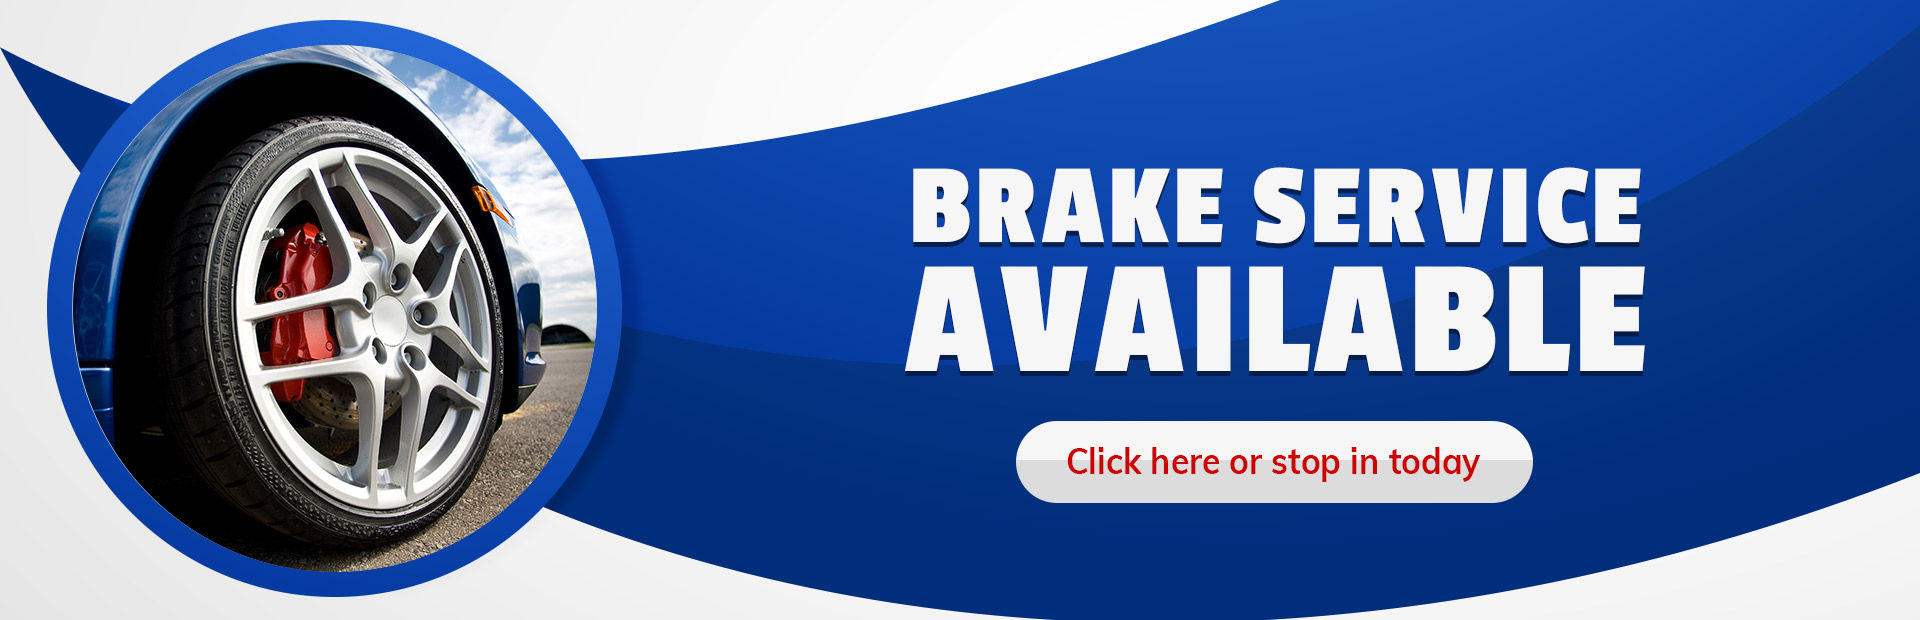 We're offering Brake Services! Click here for more details.